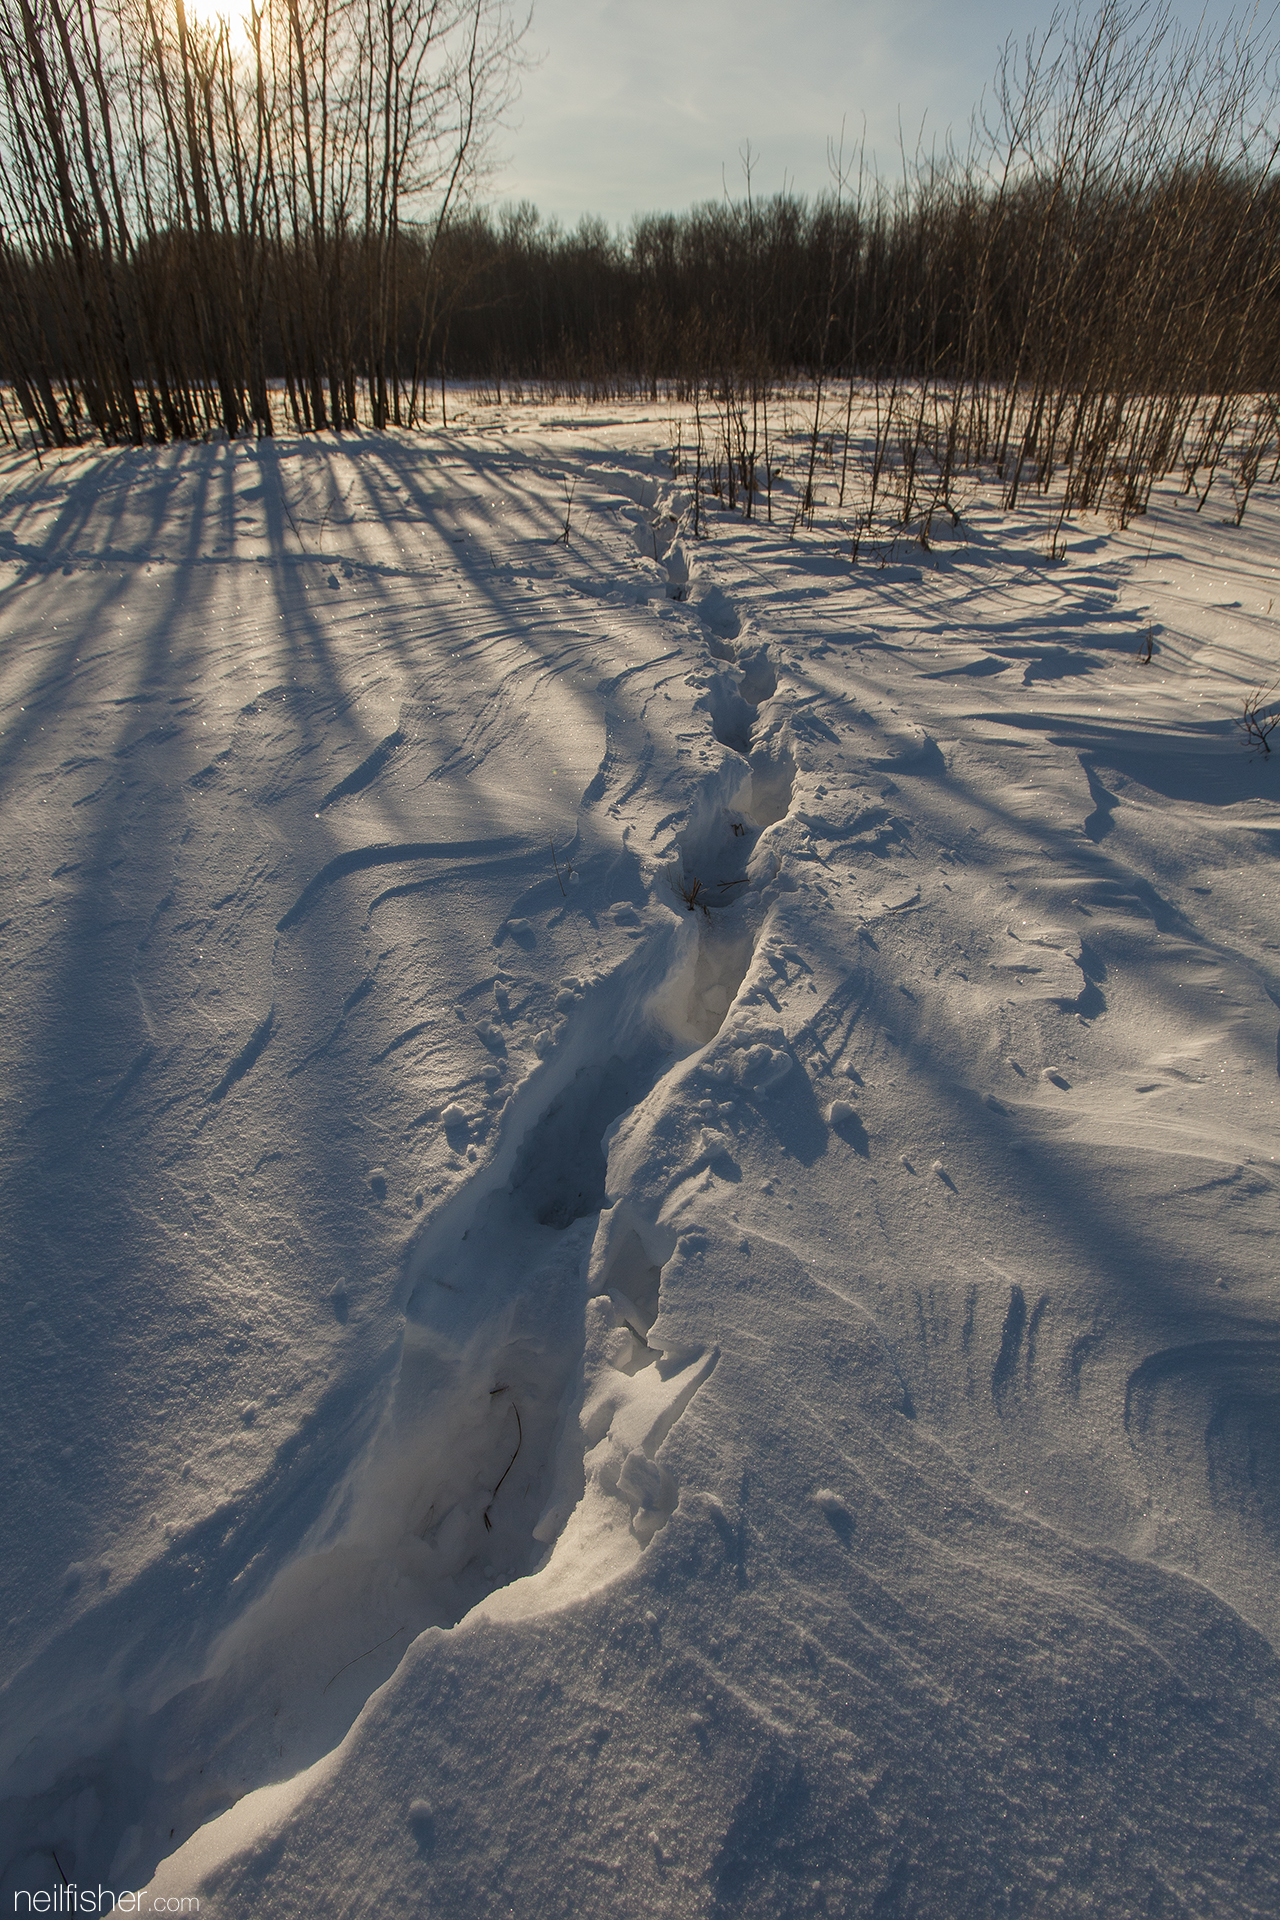 You wouldn't know it by these tracks, but fifty bison moving in single file, following in each other's foot steps passed through here. And bison don't only walk, they can also fly. Parks Canada flew 30 wood bison from the Elk Island herd to Russia as part of an international conservation project.